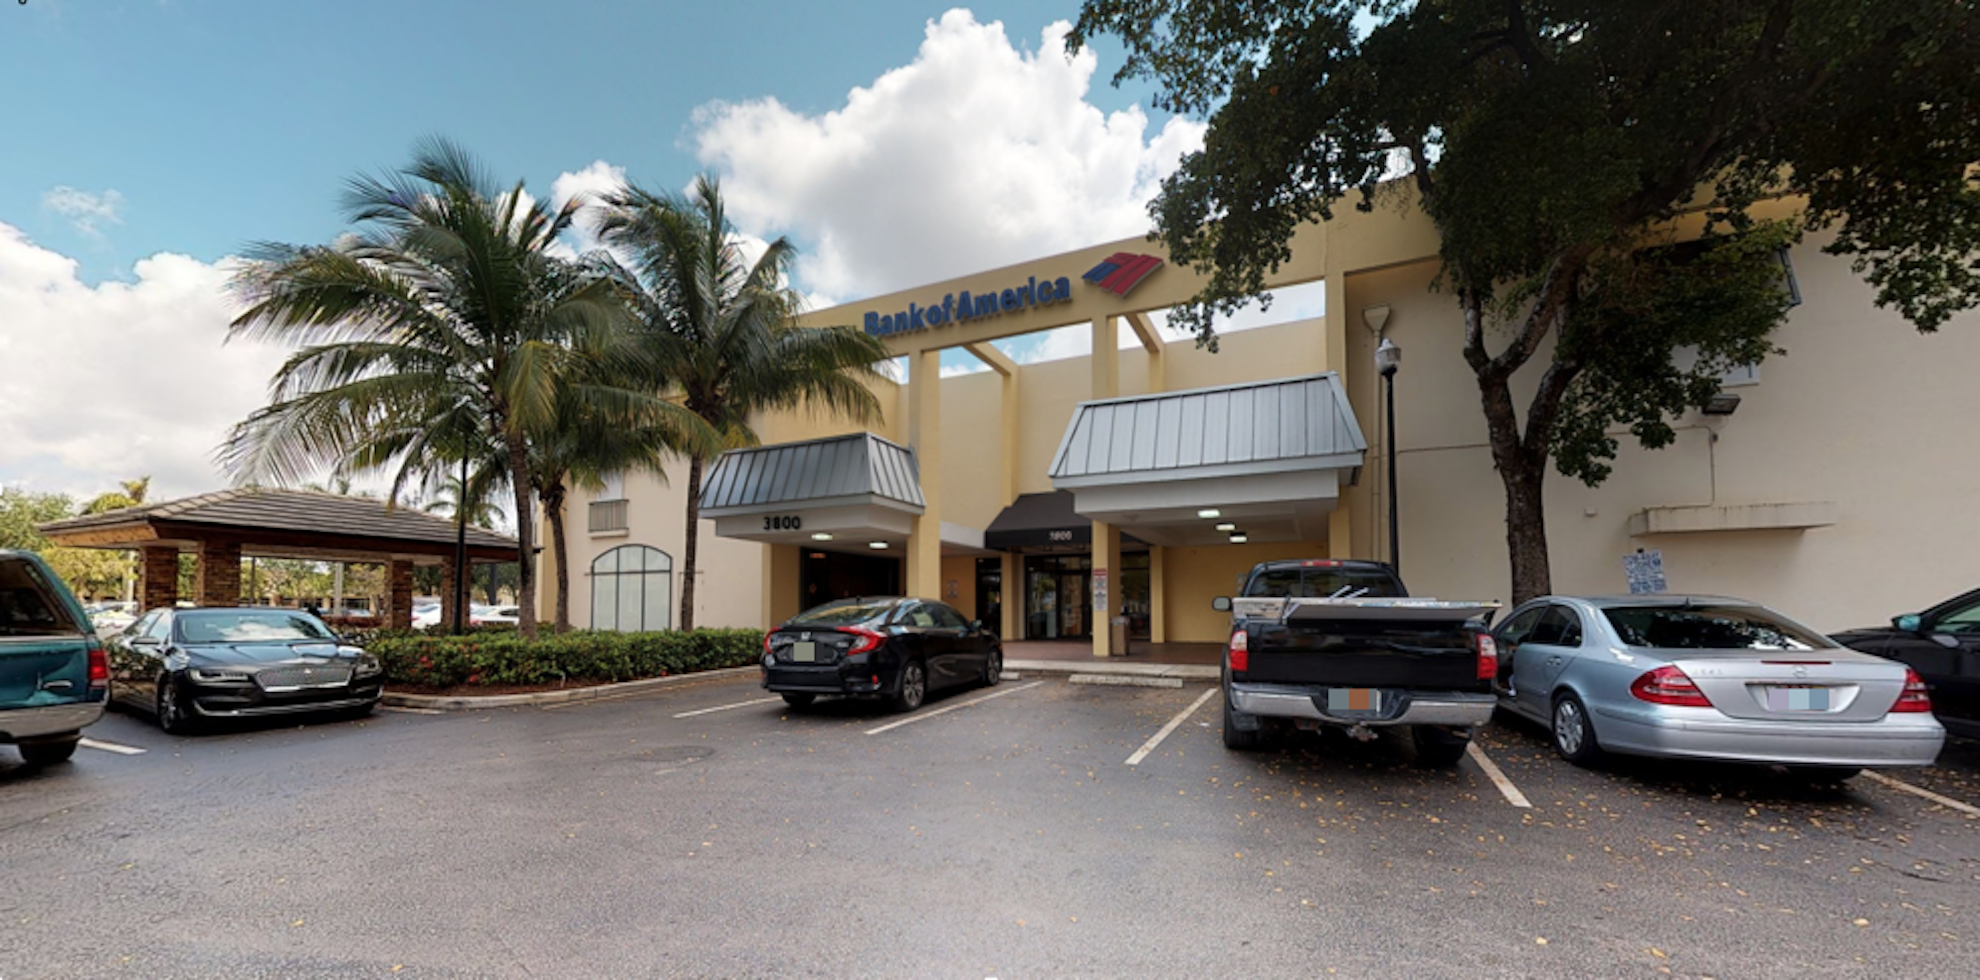 Bank of America financial center with drive-thru ATM   3800 W Broward Blvd, Fort Lauderdale, FL 33312